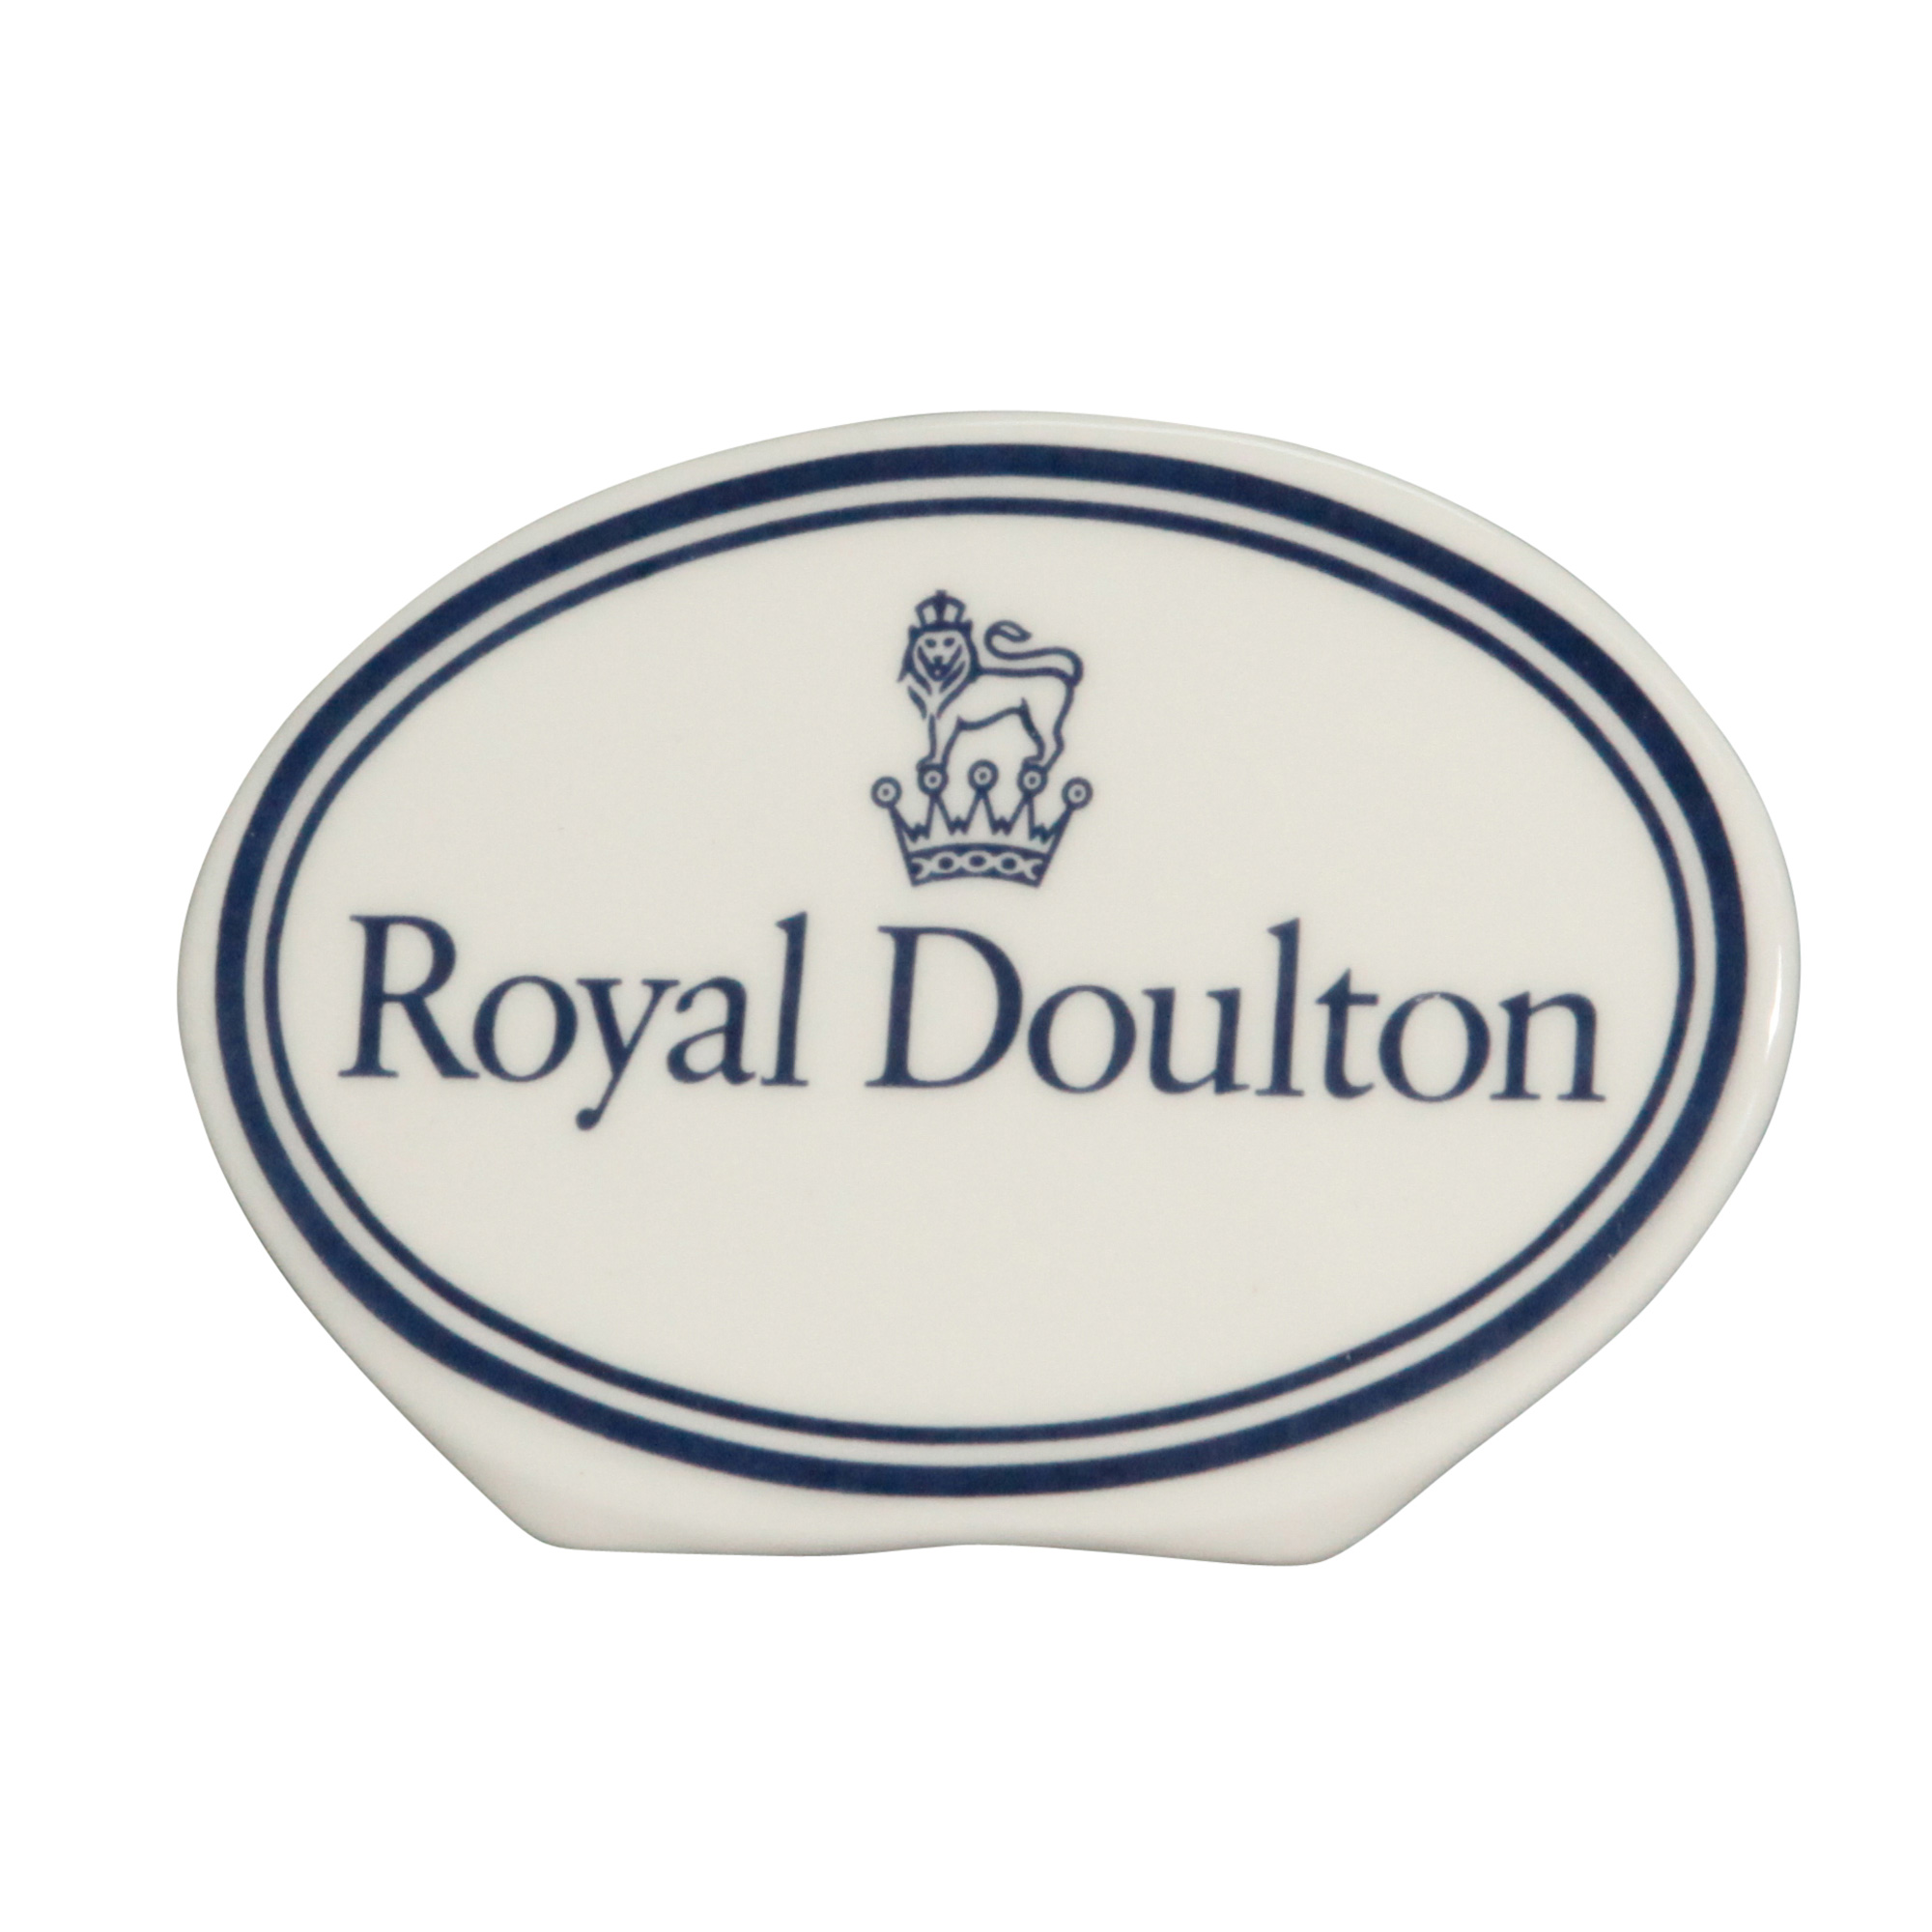 Display Sign Oval Royal Doulto